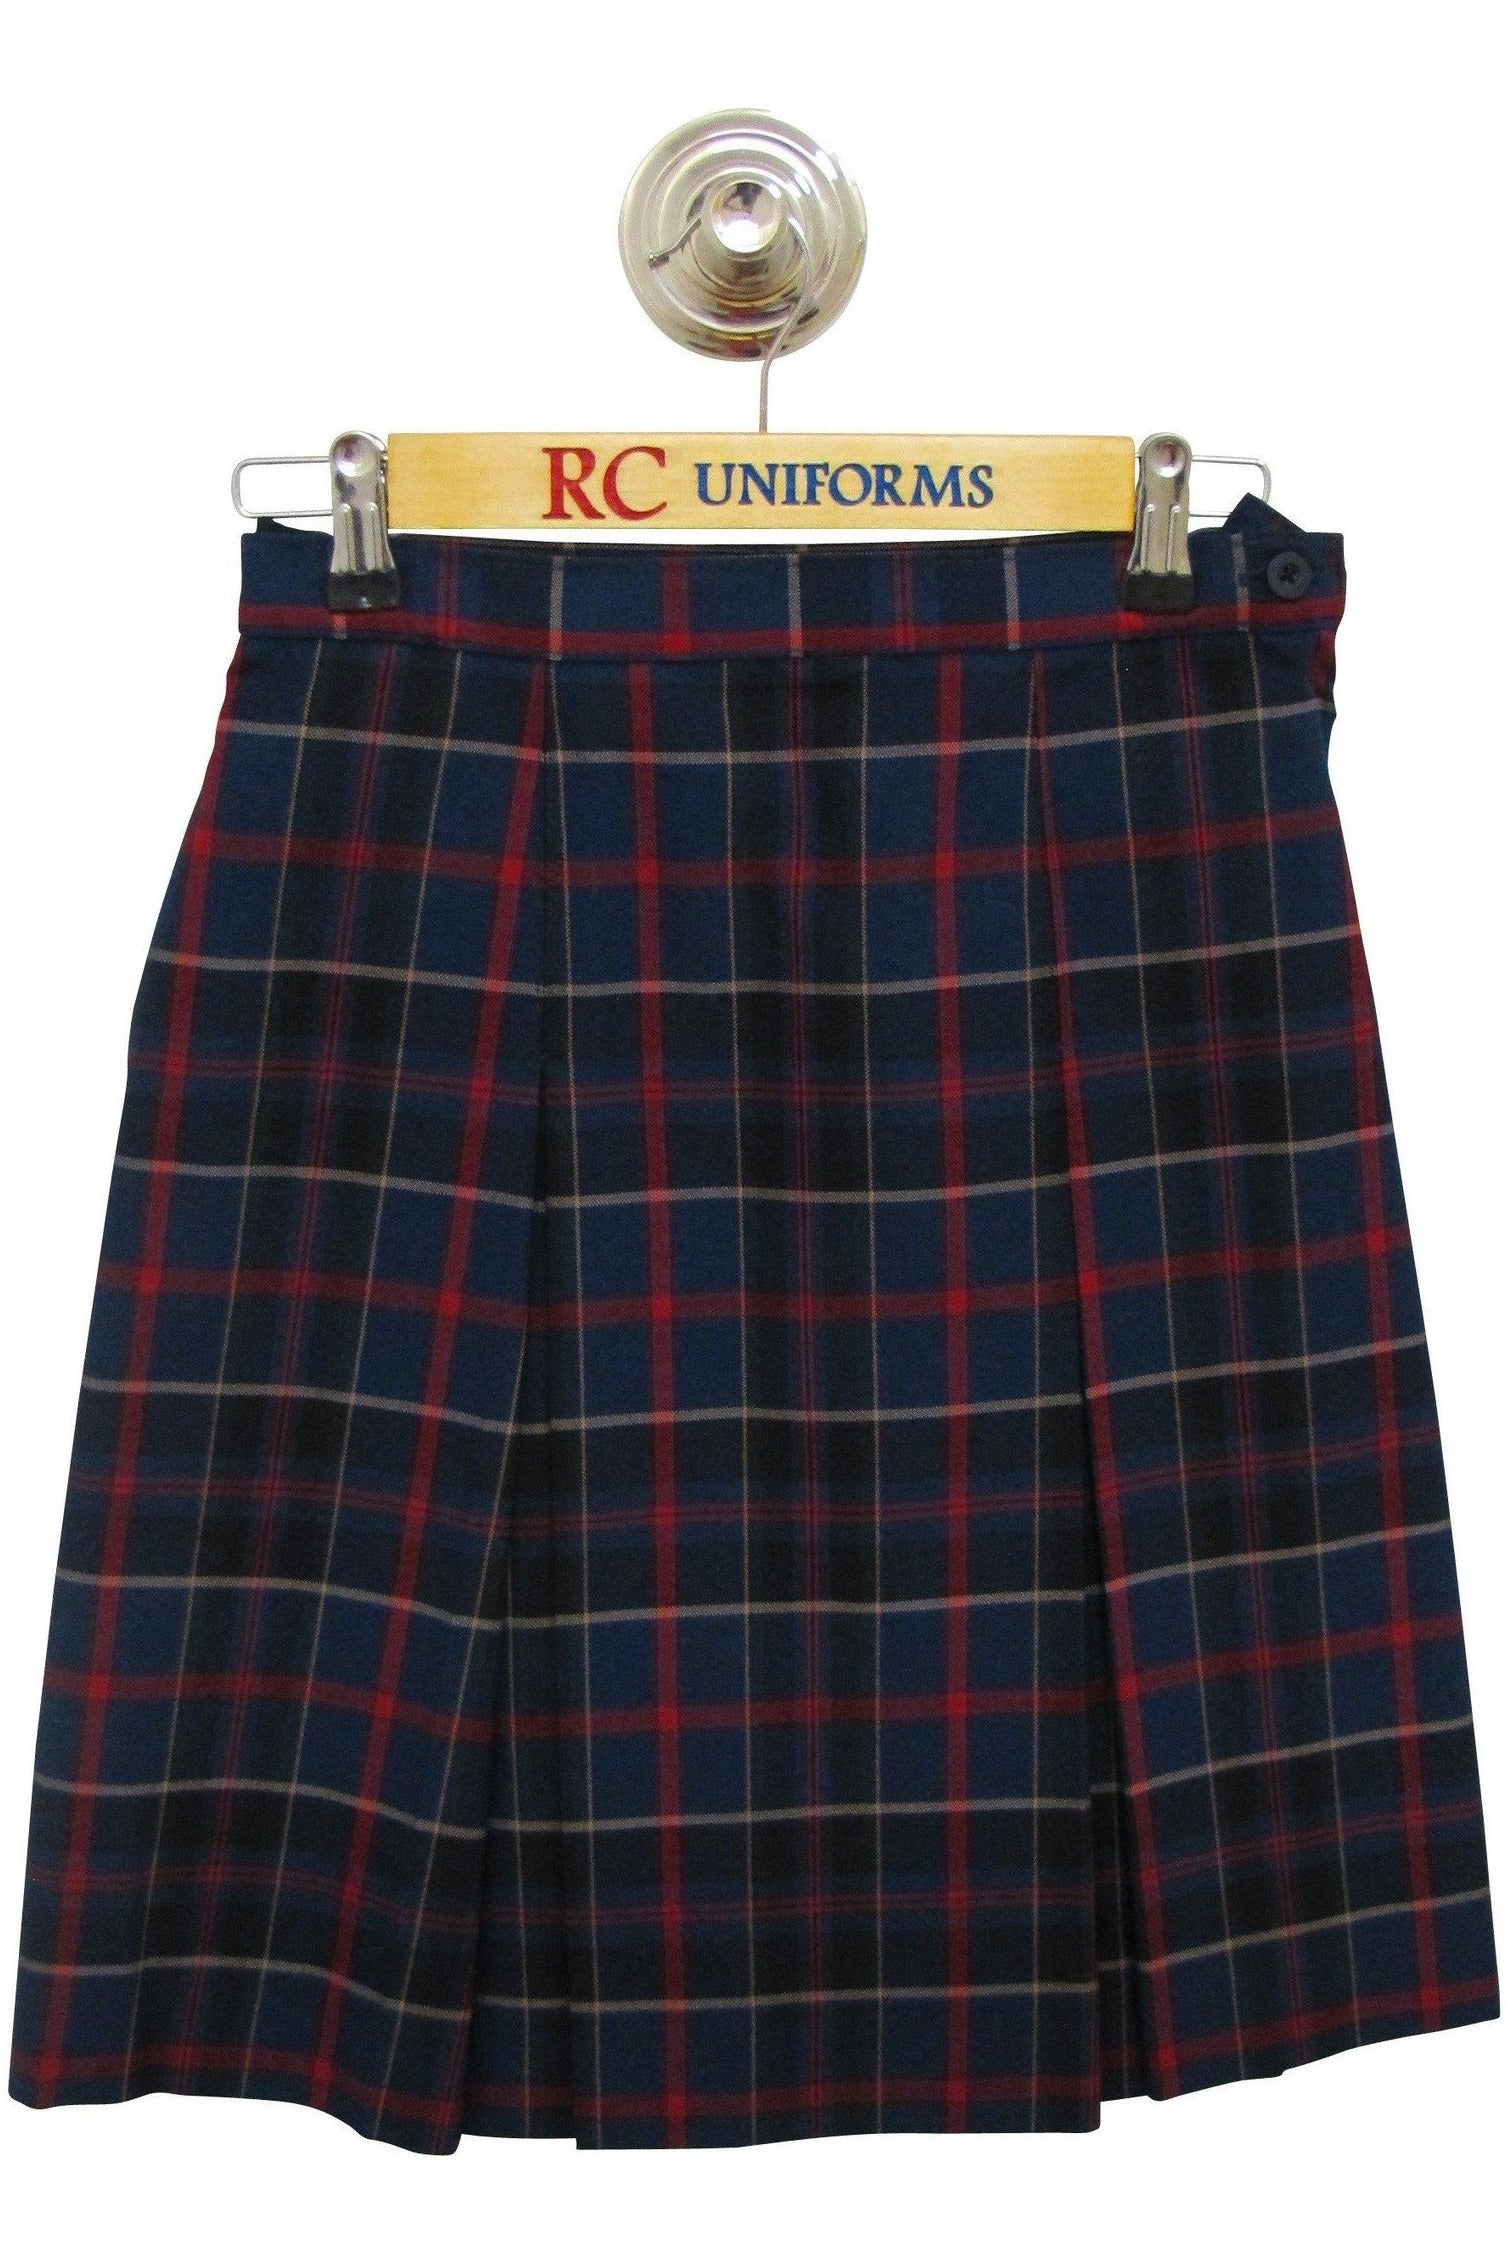 Plaid 93 Box Pleat Skirt - RC Uniforms